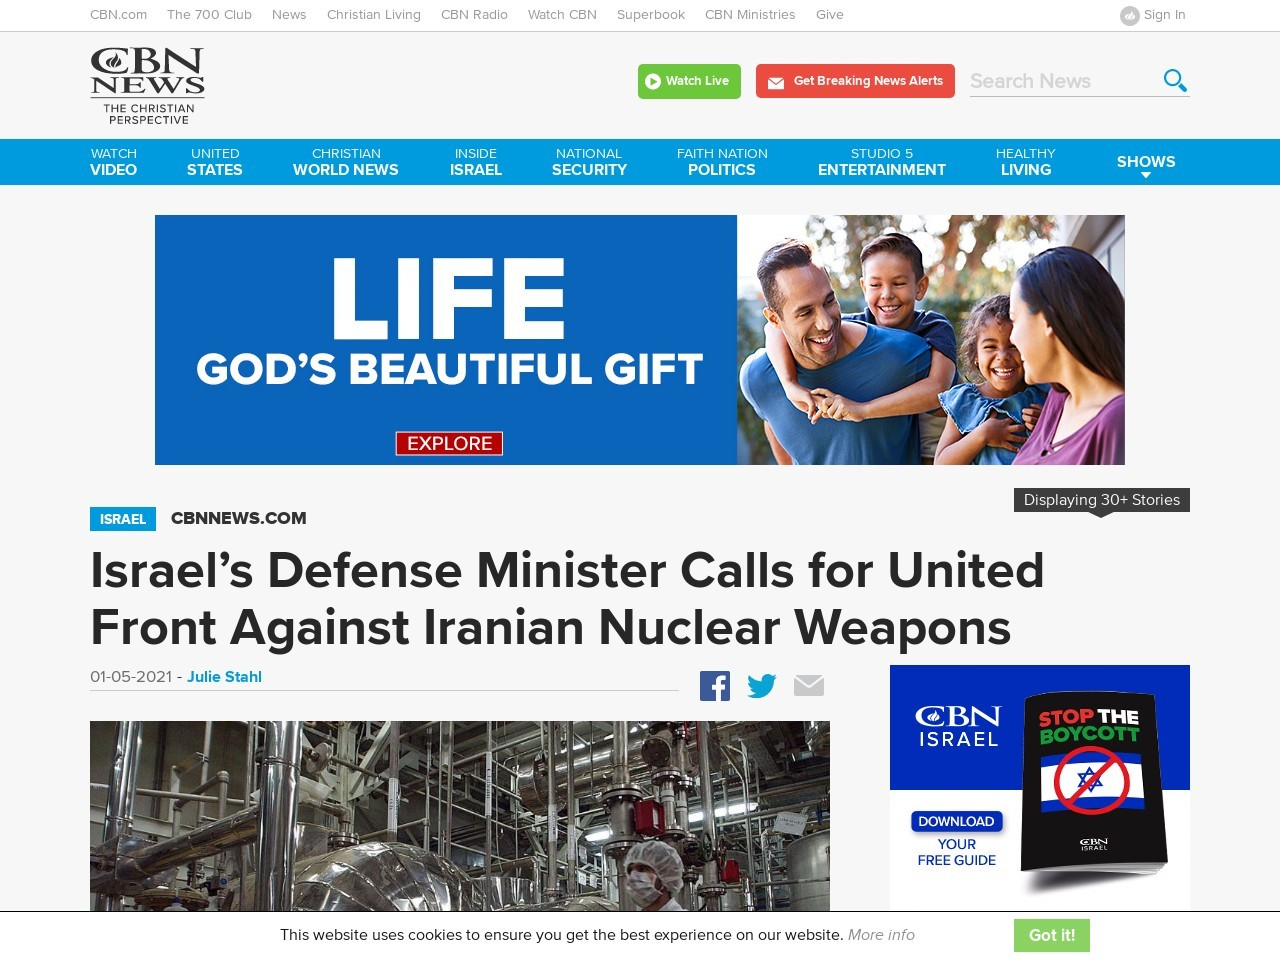 Israel's Defense Minister Calls for United Front Against Iranian Nuclear Weapons